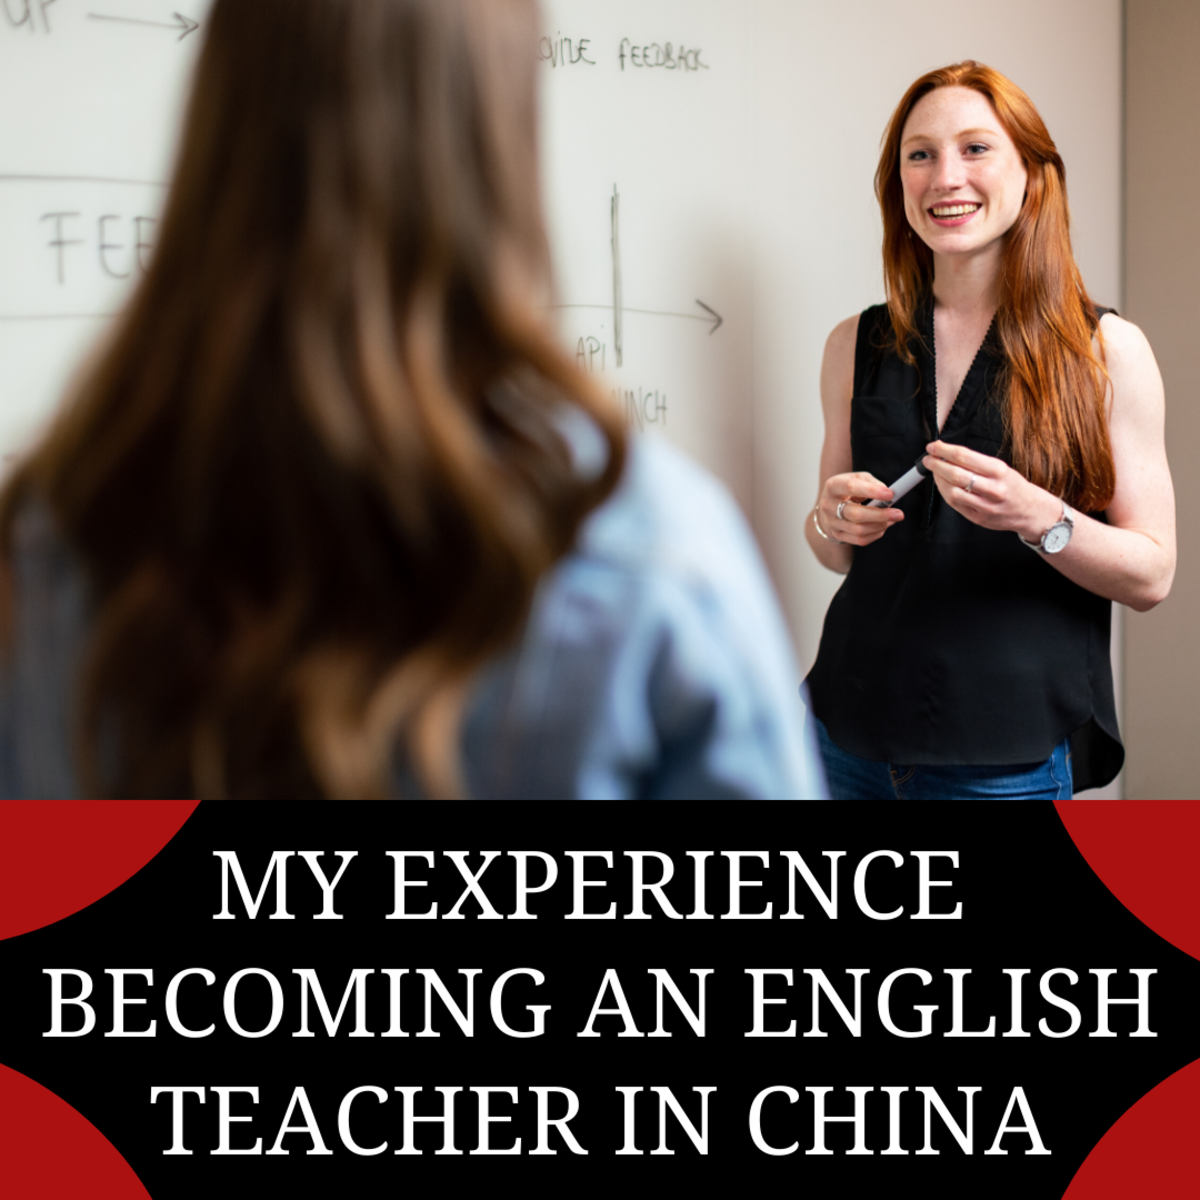 My Experience Becoming an English Teacher in China